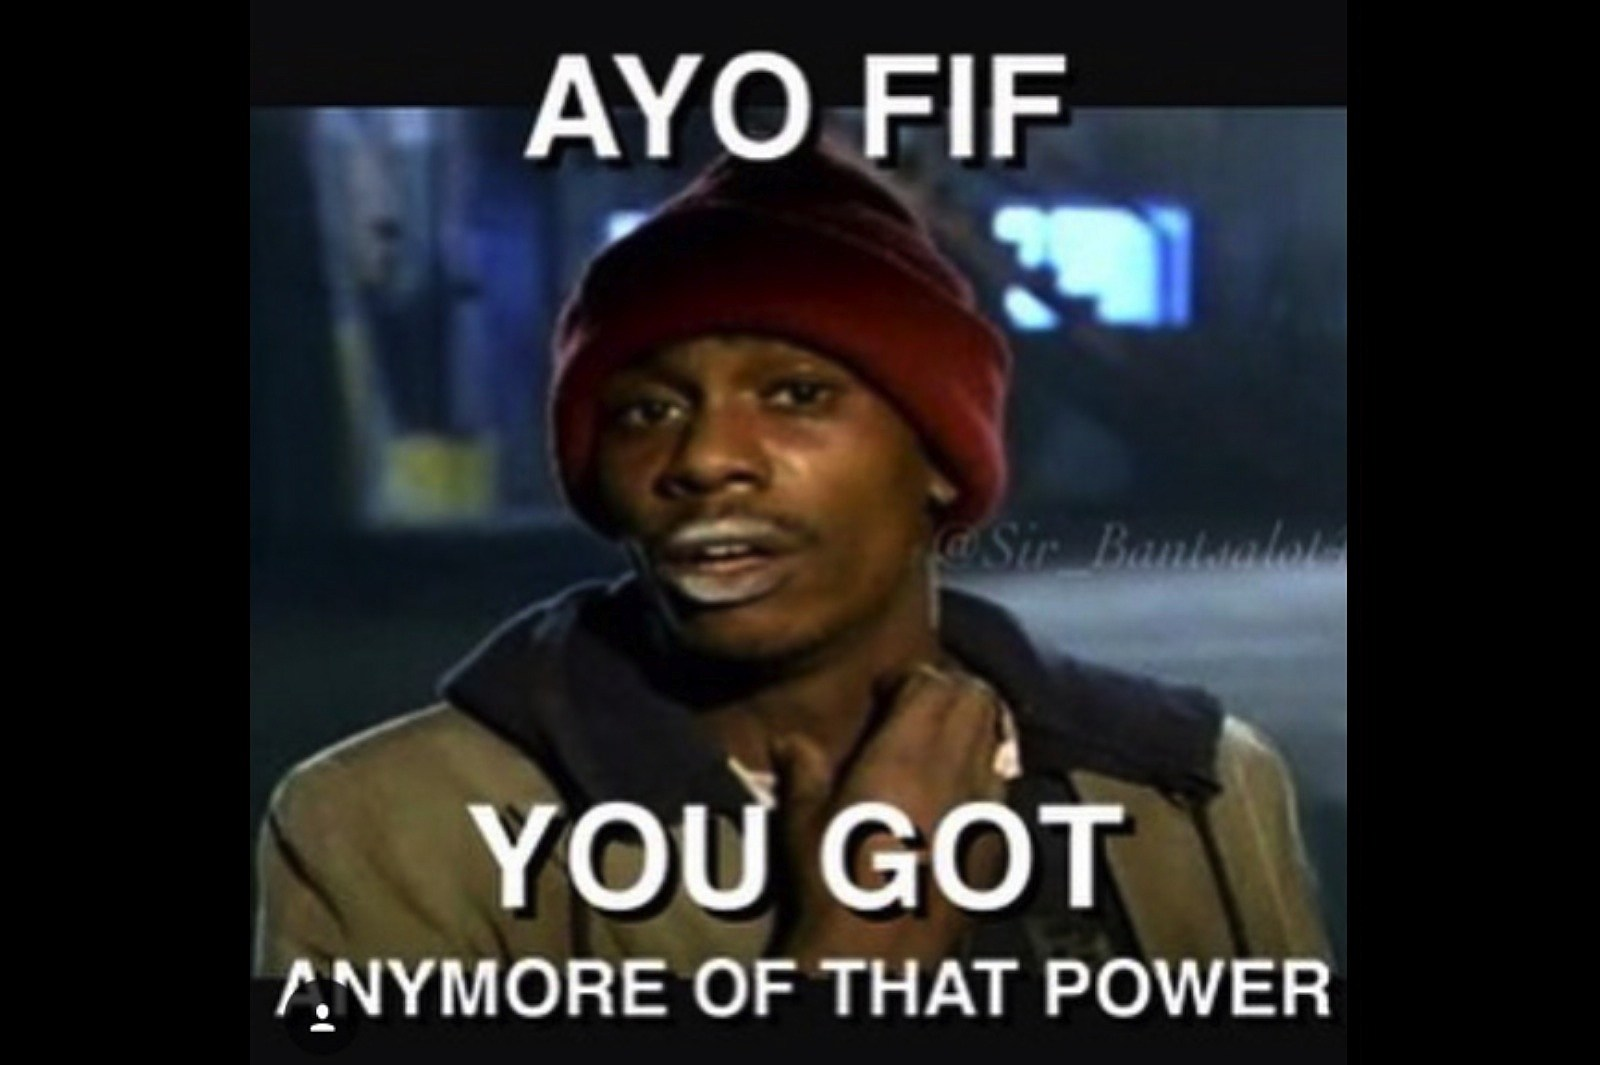 Power Meme 18?w=630&h=420&zc=1&cc=000000&a=t 50 cent delivers remix to young m a's \u201cooouuu\u201d xxl,Ooouuu Meme